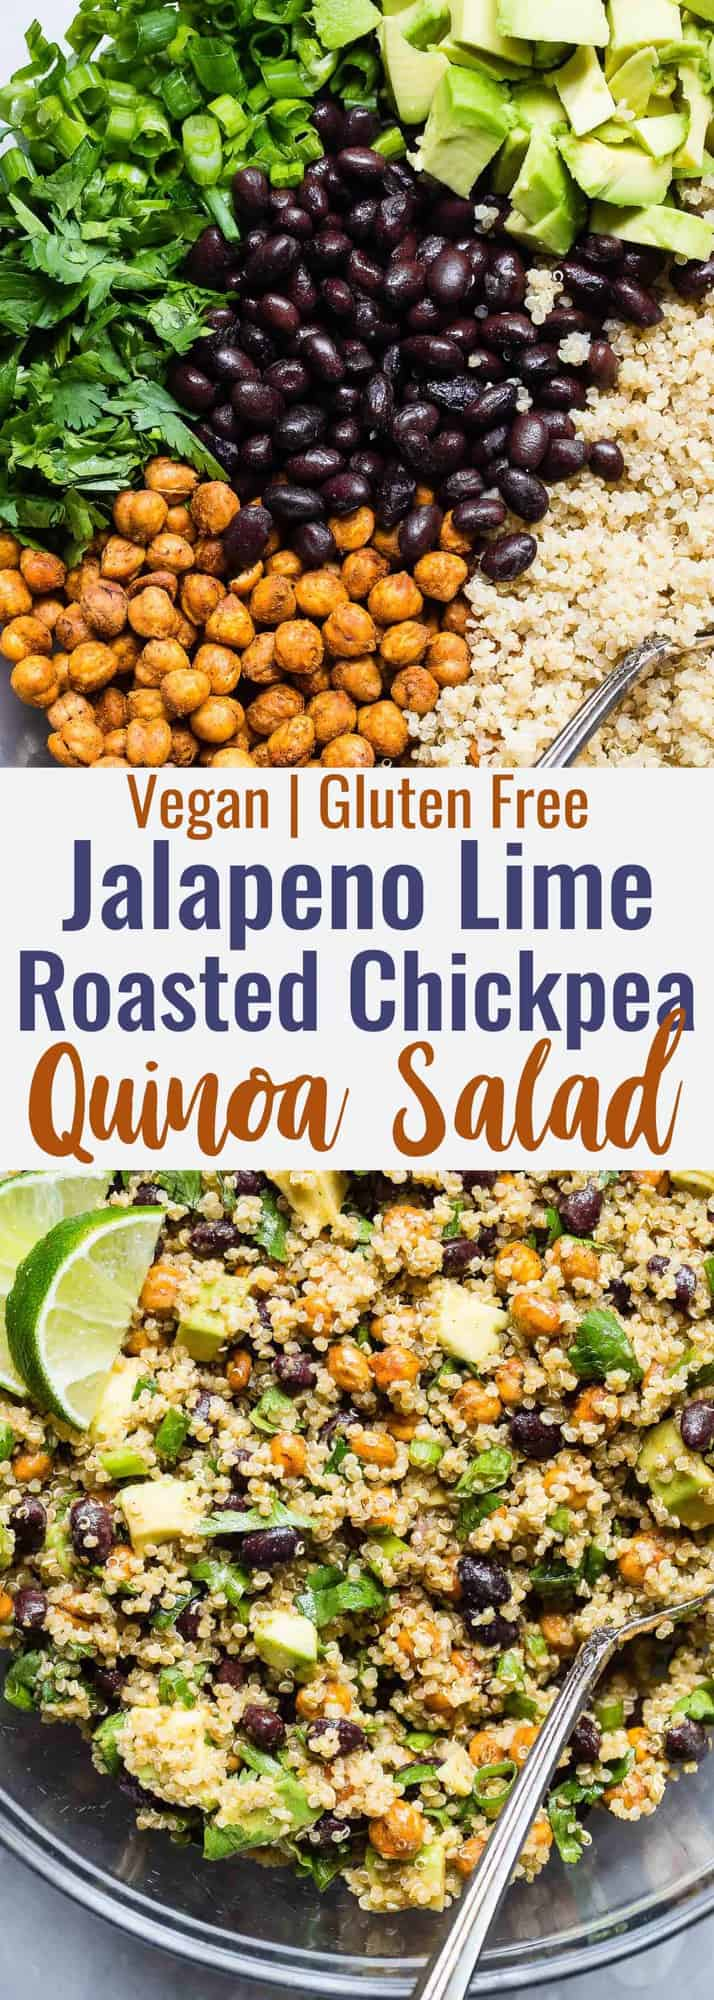 Mexican Quinoa Salad with Roasted Chickpeas -This EASY quinoa saladis going to be your new favorite side or potluck recipe! It's healthy, gluten free, vegan friendly and CRAZY YUMMY! The Jalapeno lime dressing is EVERYTHING.   #Foodfaithfitness   #Vegan #Healthy #GlutenFree #Dairyfree #Quinoa